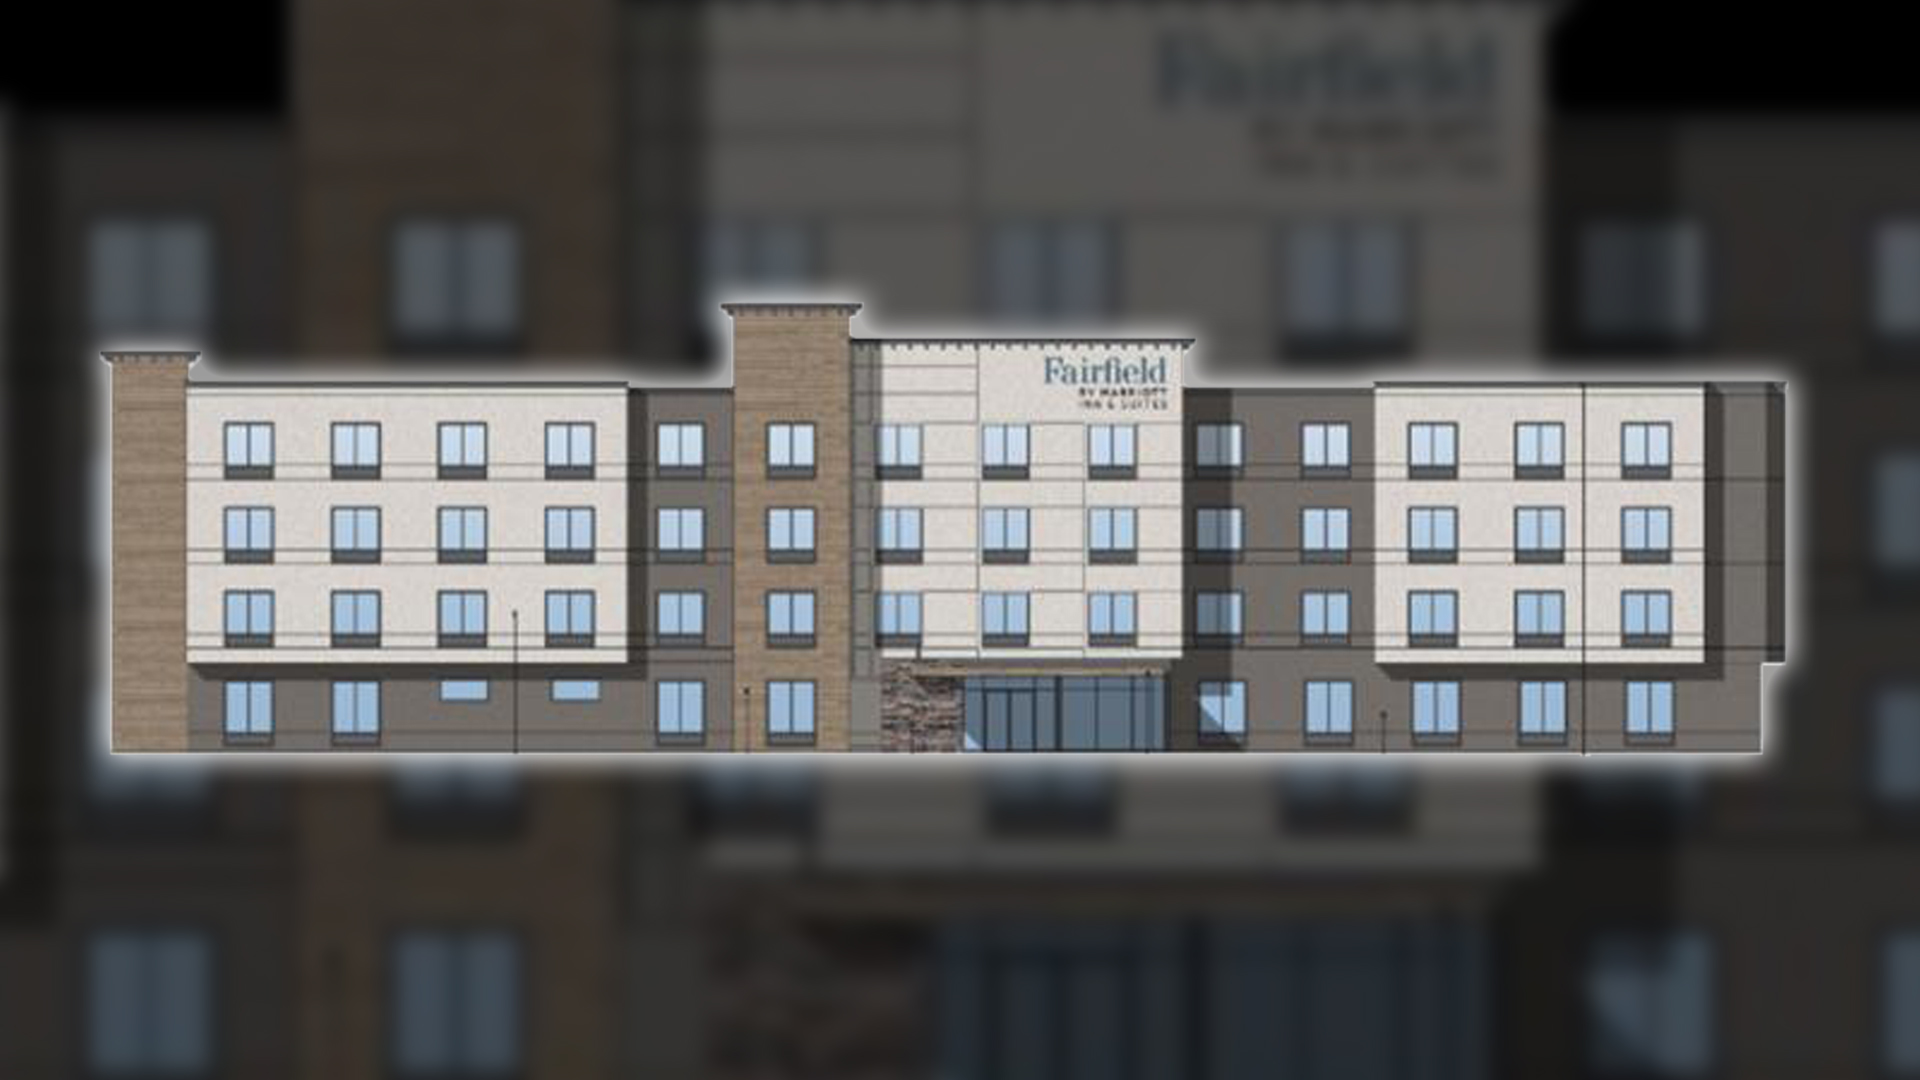 Front elevation rendering of the Fairfield Inn slated to be constructed in Timbermill Shores area of Downtown Klamath Falls. Ferguson Properties id the developer of the project.